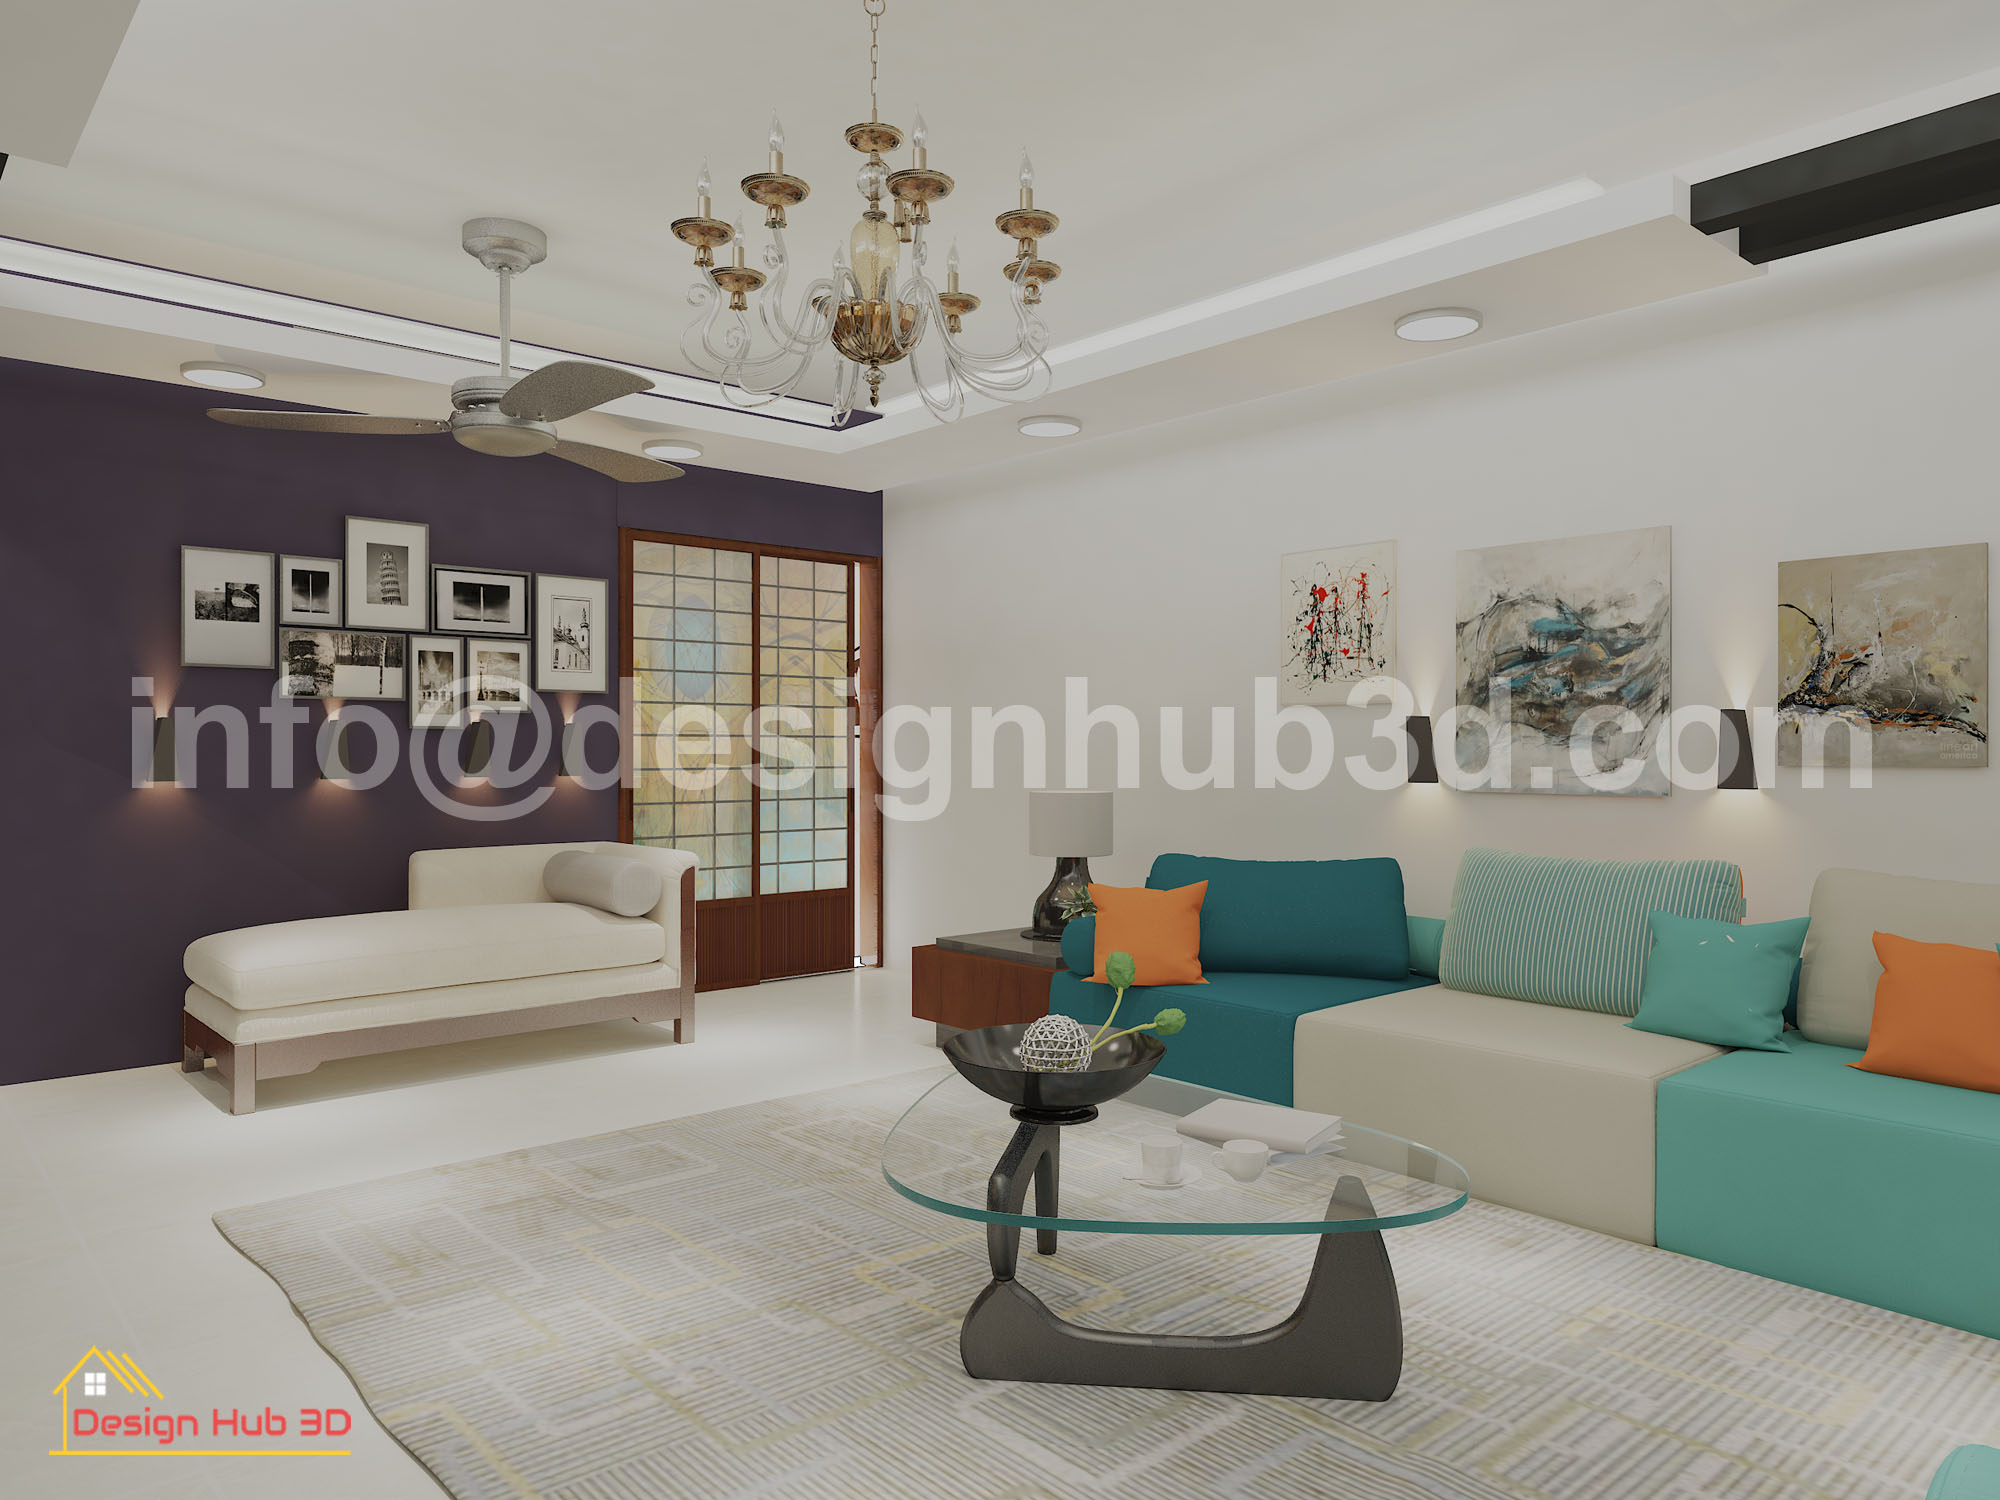 Designhub3d-home decor, drawing interior, living room,interior design